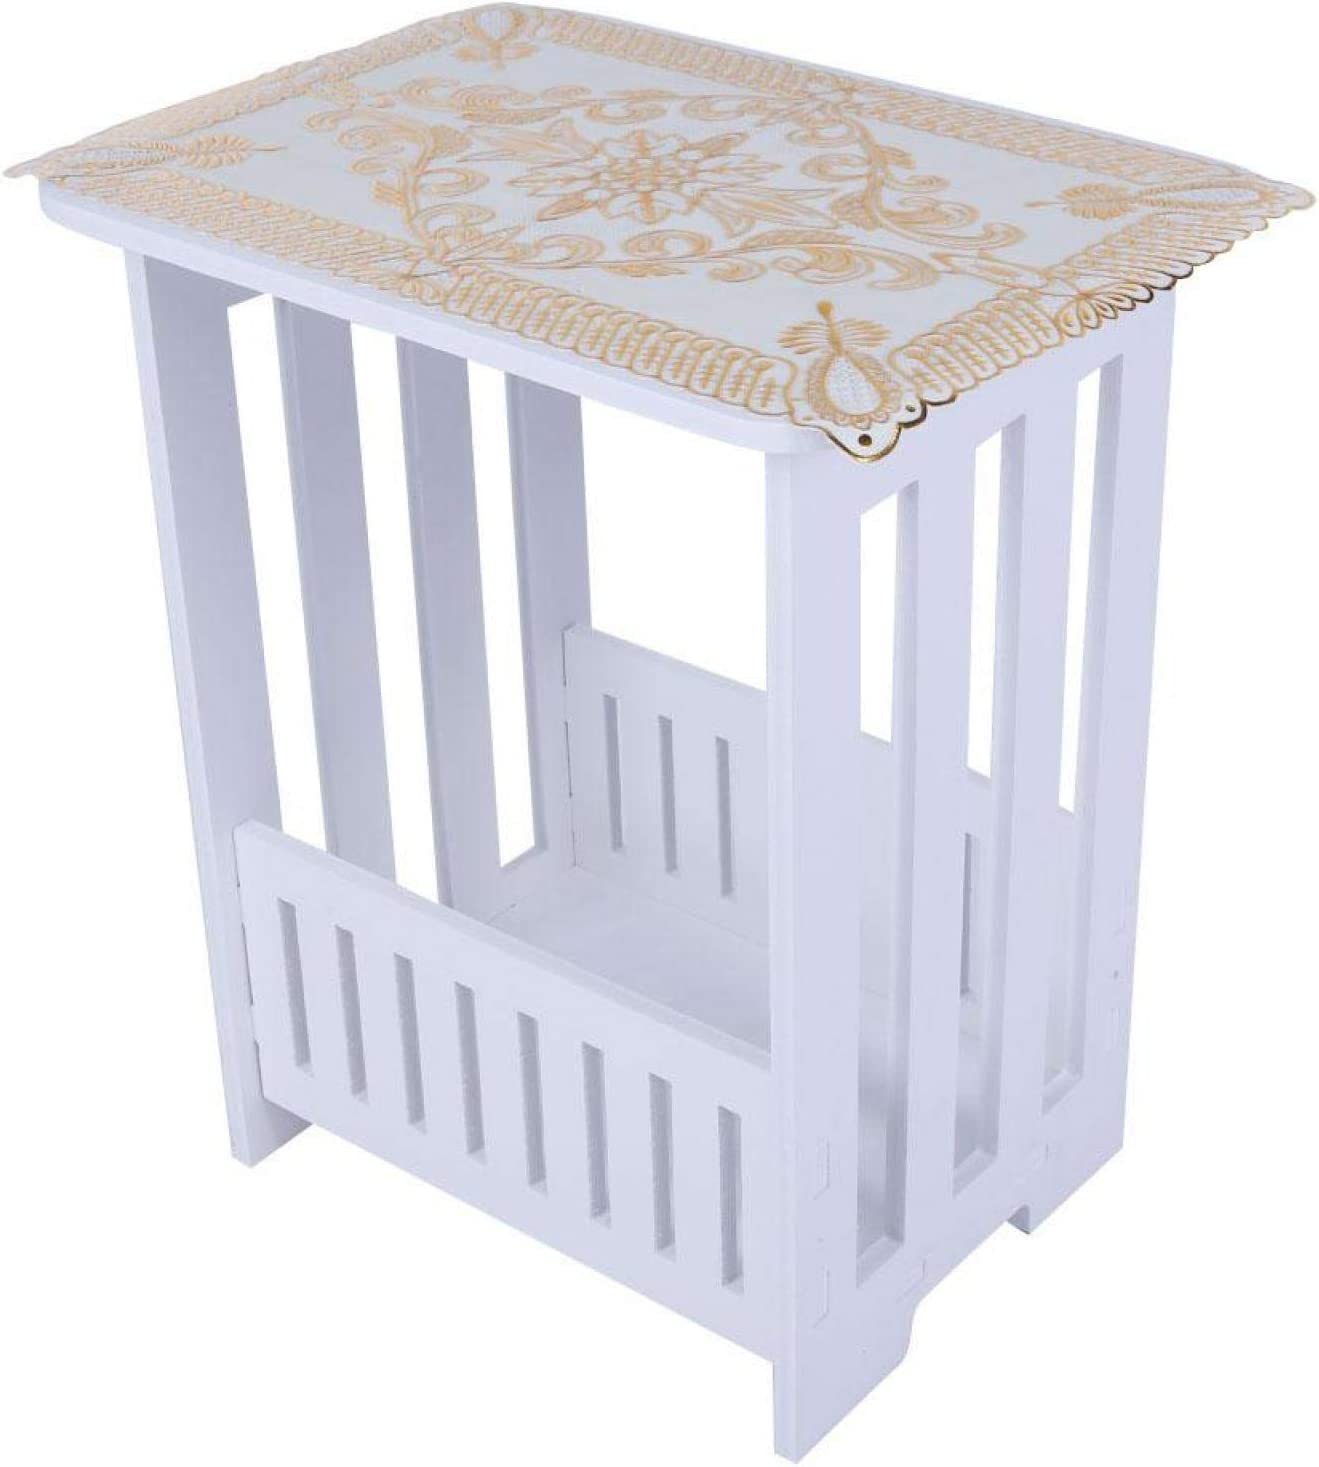 Okuyonic End Table Good Bearing 342640c for White Capacity Cafes 4 years Max 88% OFF warranty